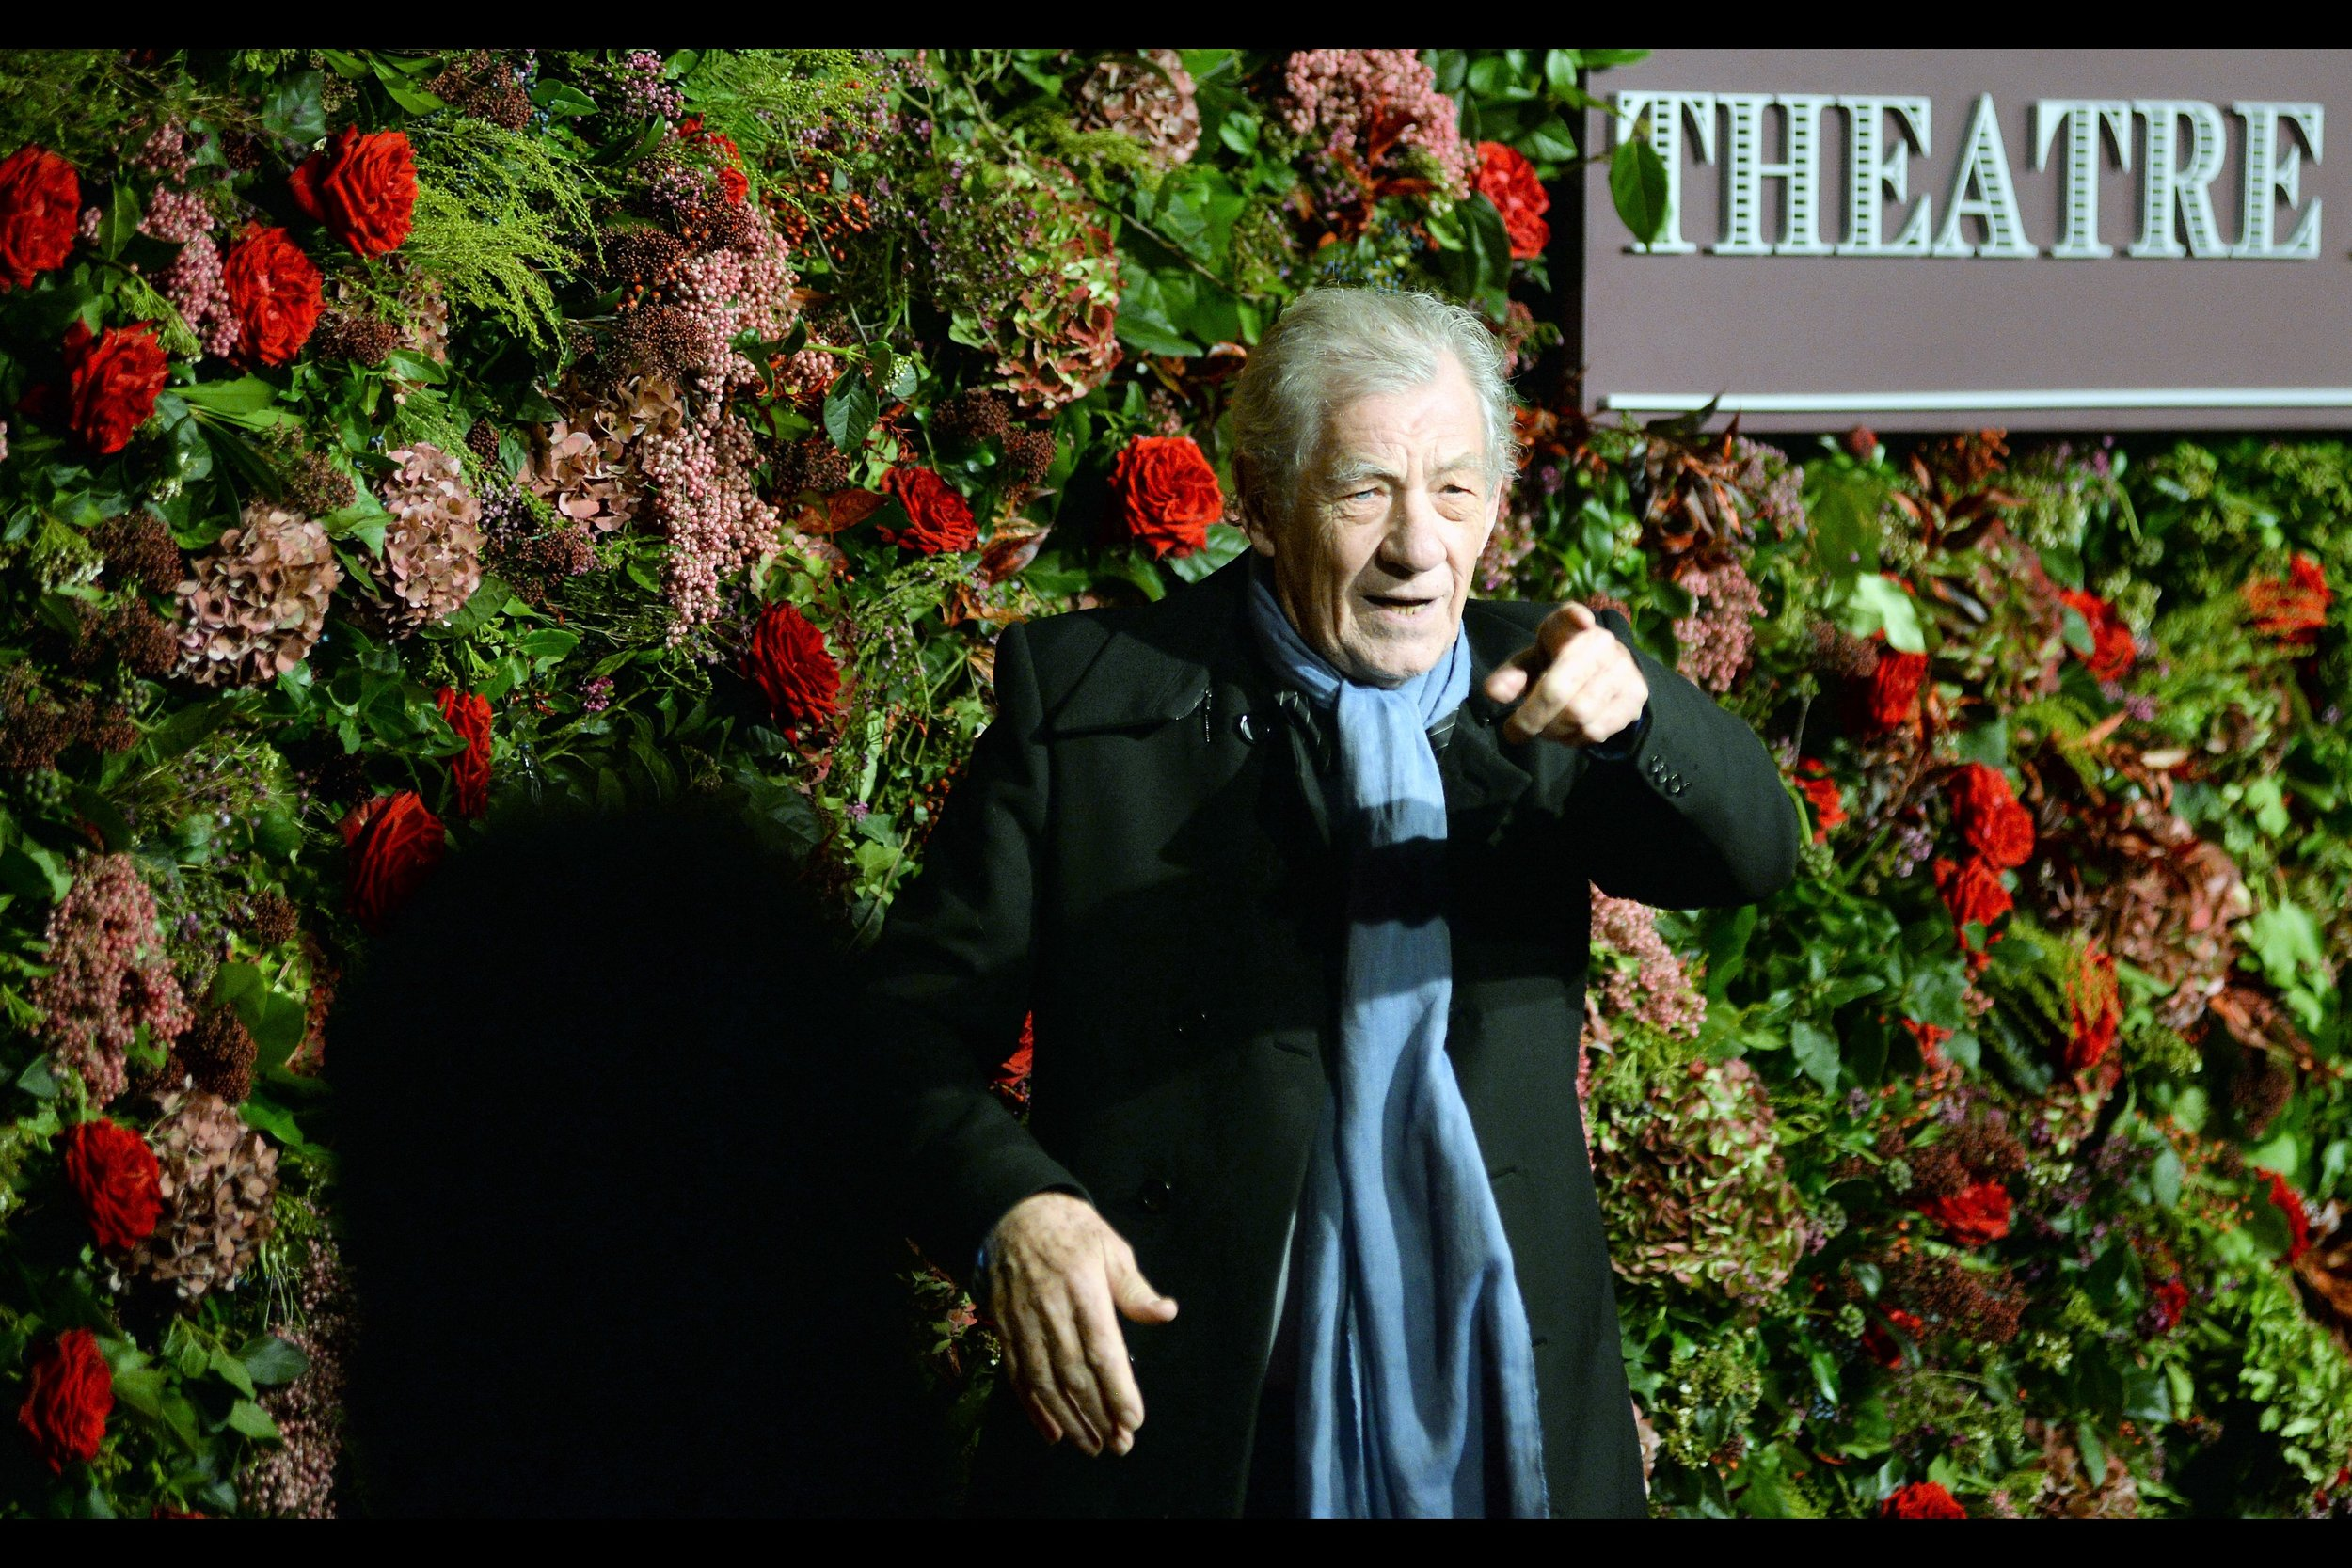 """You gotta check out this guy's website. It's frikkin' awesome"" . You just gotta straighten that finger slightly and point it two people to the left…. and you're absolutely right Mr McKellen!!"